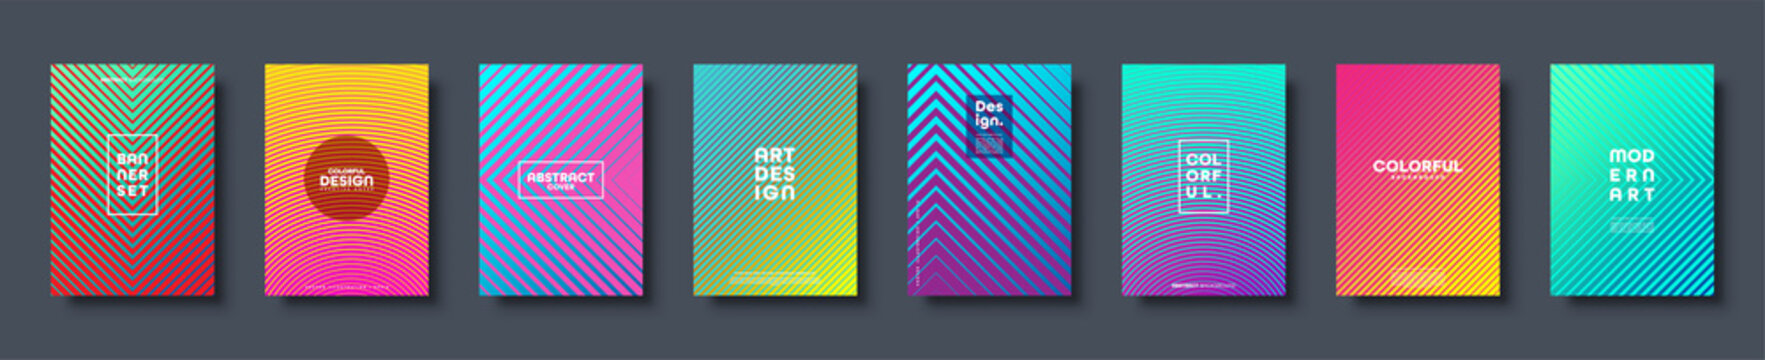 Modern abstract background with geometric shapes and lines. Colorful trendy minimal A4 template cover with gradient. EPS 10 vector illustration.